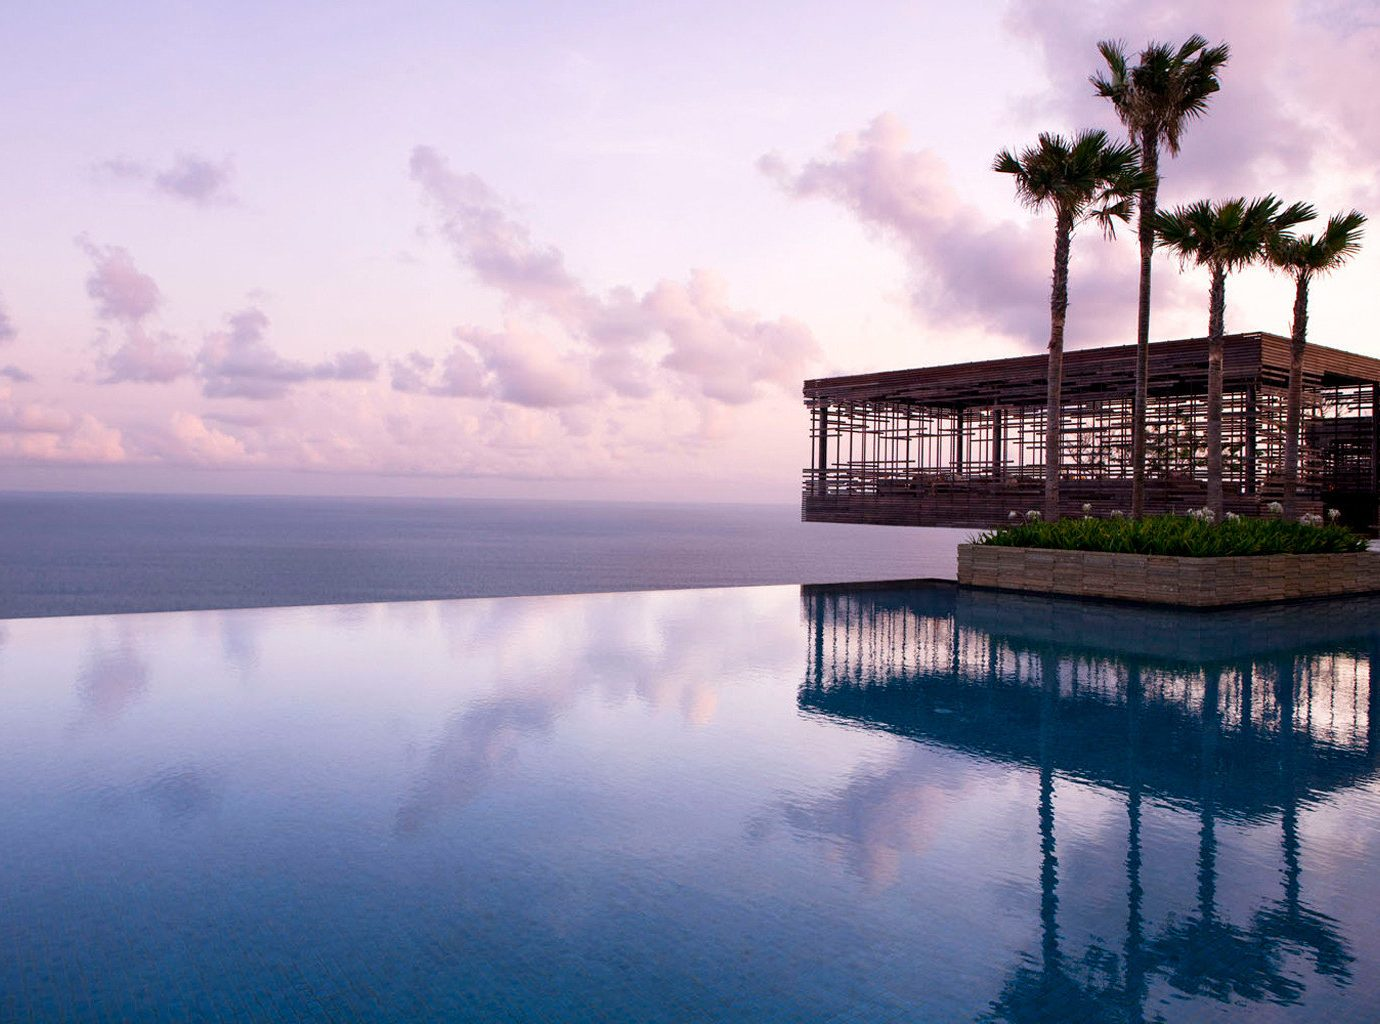 Infinity Pool At The Alila Villas Uluwatu In Bali